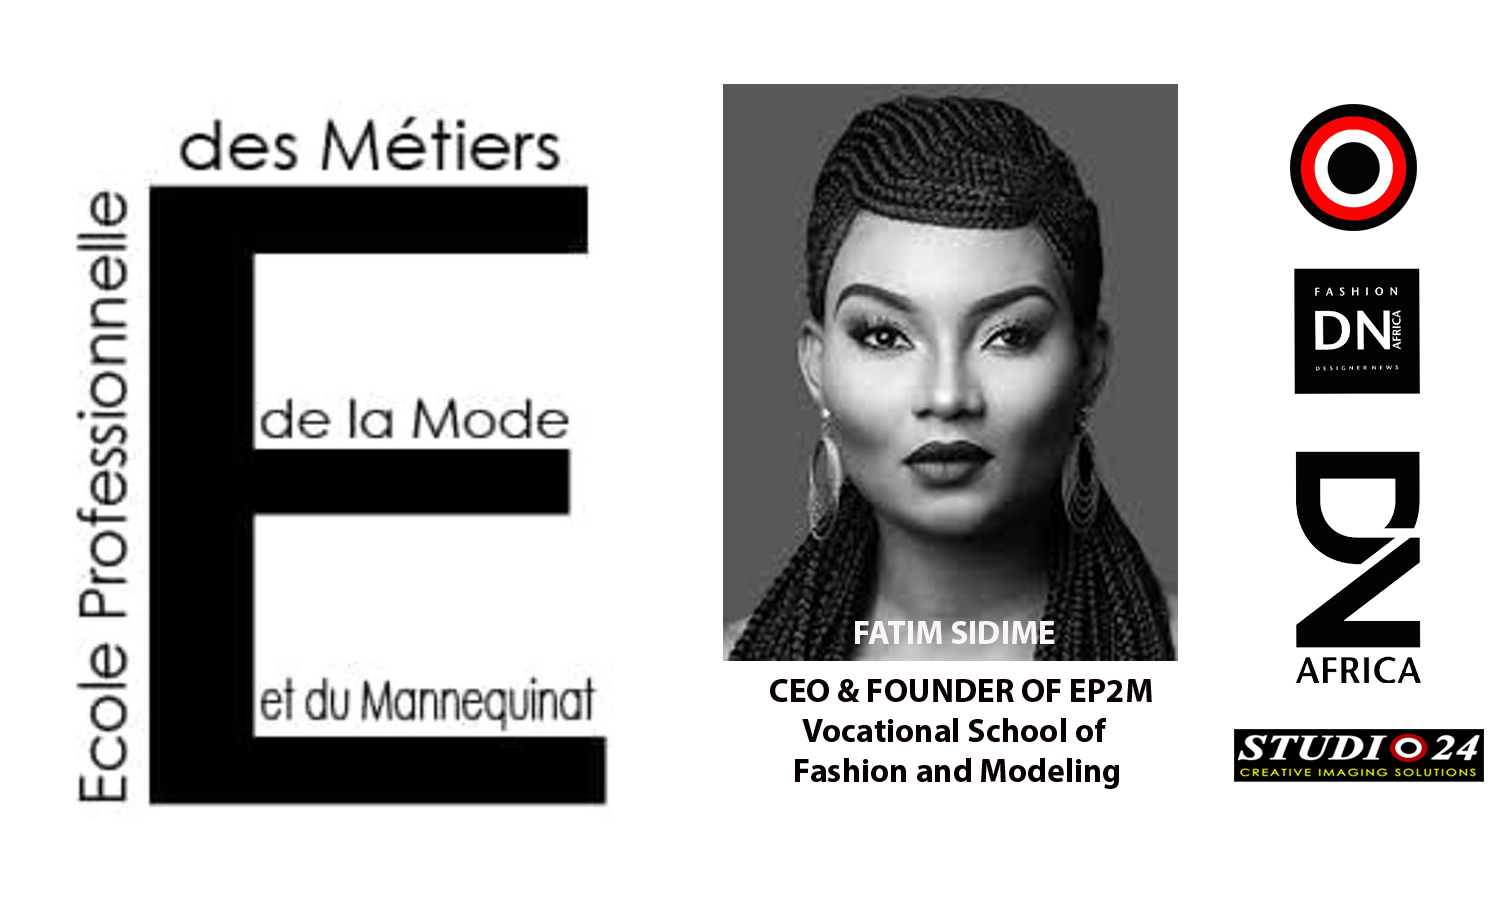 AFRICAN FASHION STYLE MAGAZINE - EP2M Vocational School of Fashion and Modeling by Fatim SIDIME CEO and Founder - PR Indirâh Events and Communication - Photographer DAN NGU - Official Media Partner DN AFRICA - STUDIO 24 NIGERIA - STUDIO 24 INTERNATIONAL - Ifeanyi Christopher Oputa MD AND CEO OF COLVI LIMITED AND STUDIO 24 - CHEVEUX CHERIE and CHEVEUX CHERIE STUDIO BY MARIEME DUBOZ- Fashion Editor Nahomie NOOR COULIBALY